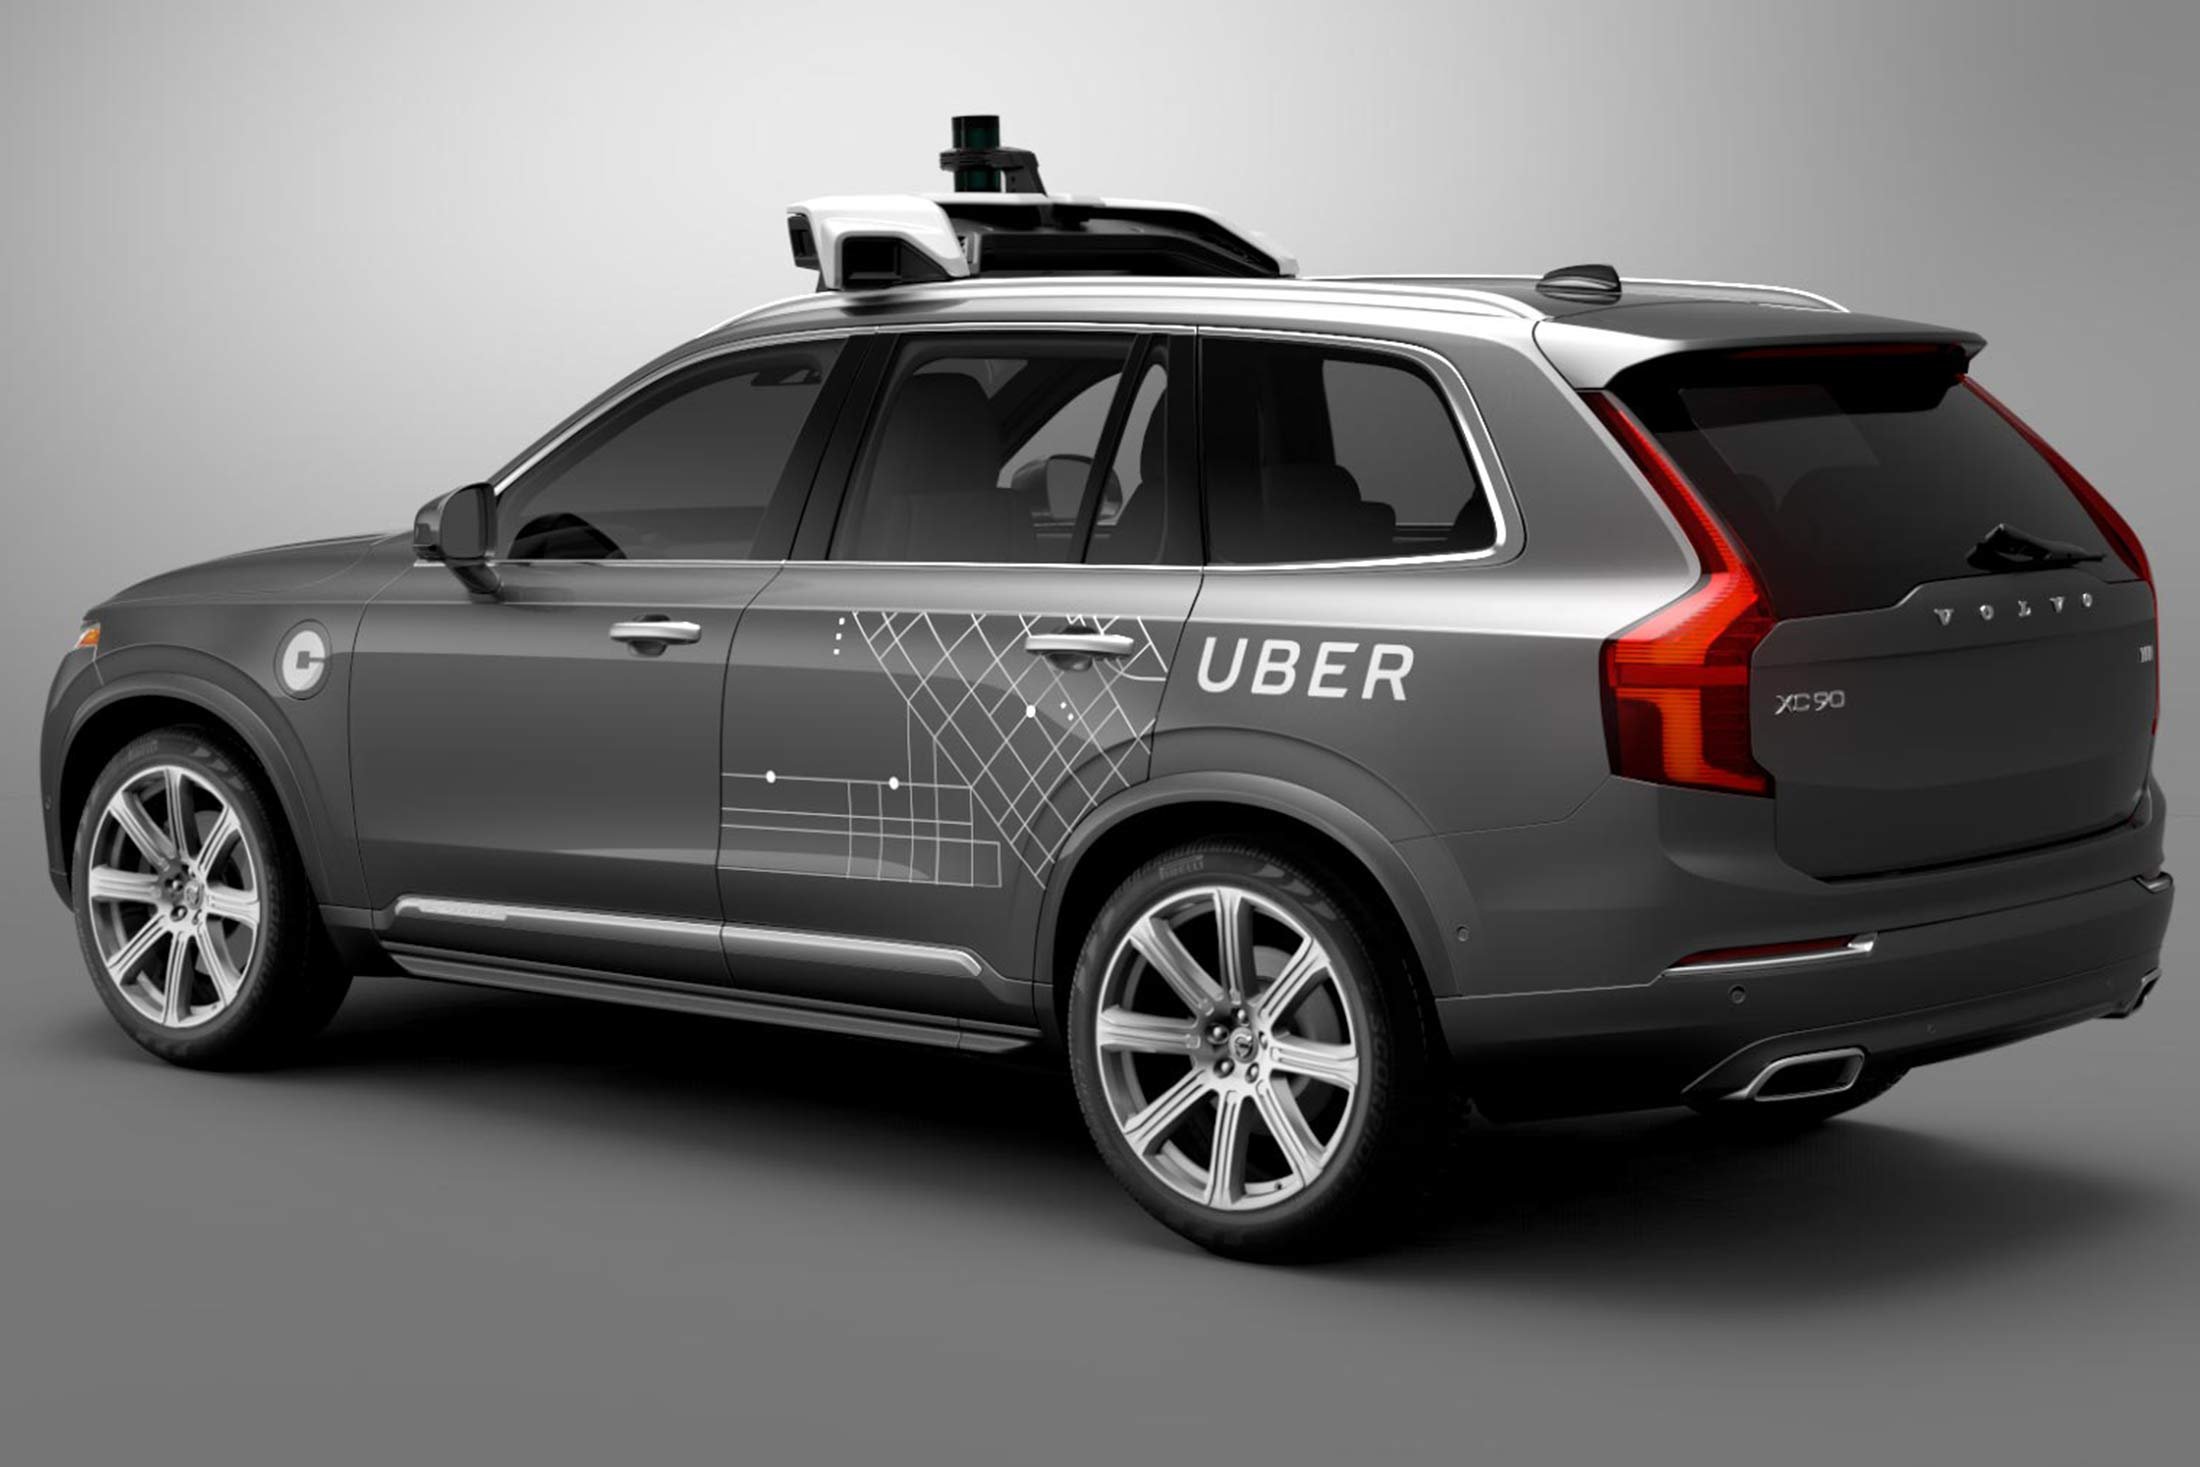 An Uber-Branded Volvo, part of the self-driving car experiments